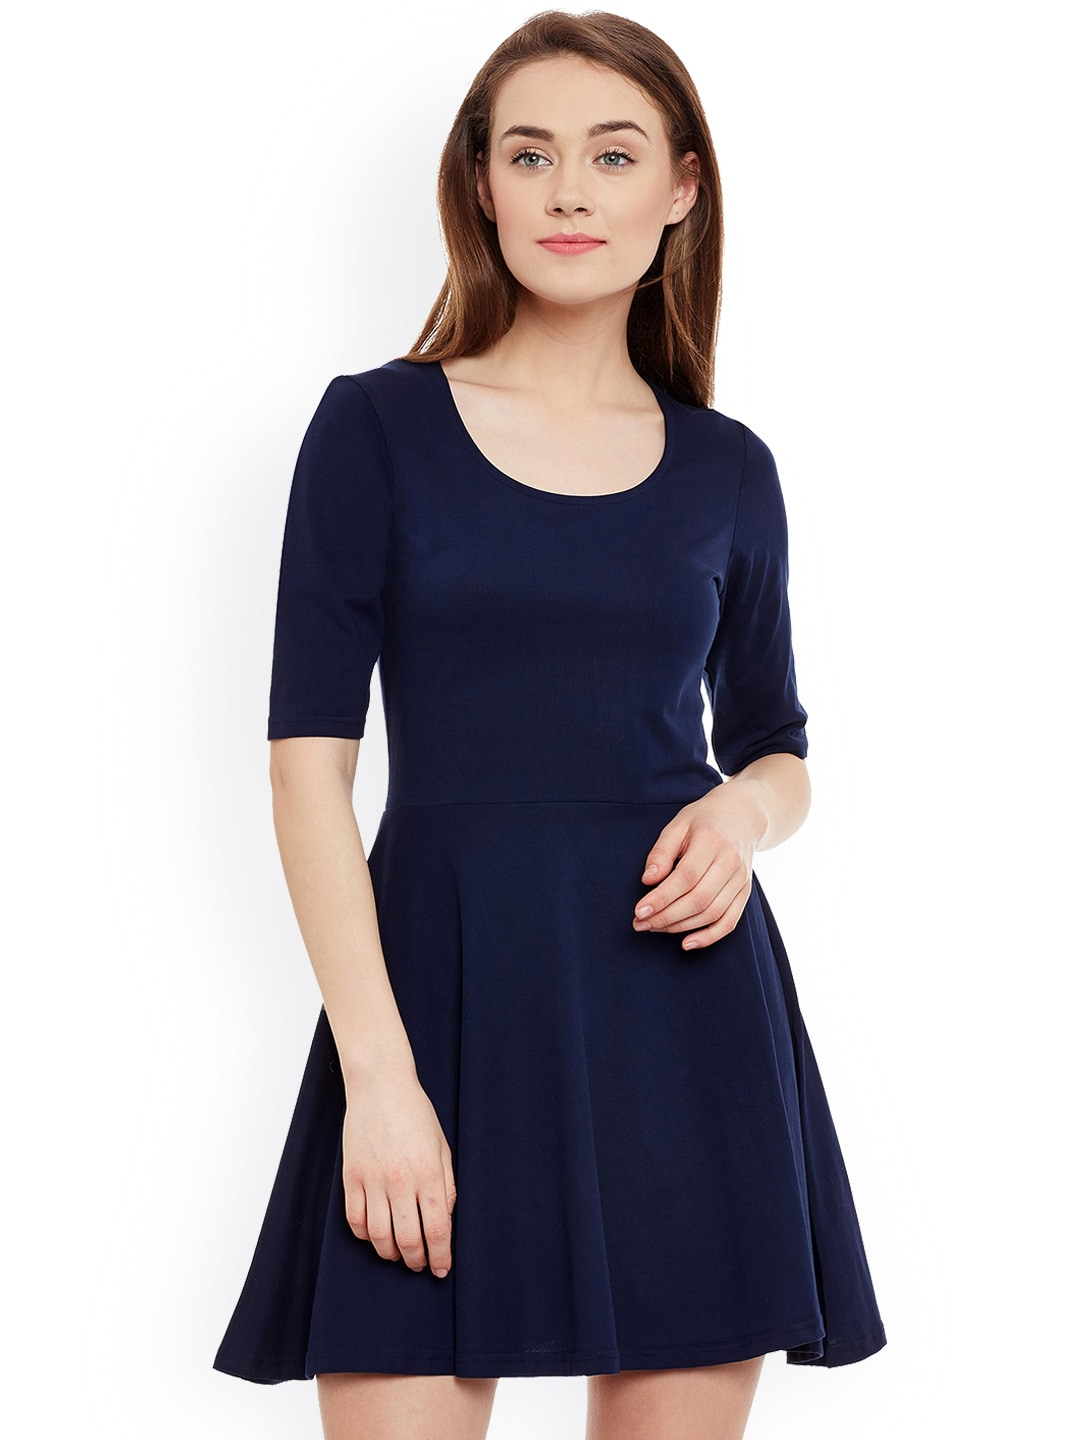 7e436144304 Miss Chase - Exclusive Miss Chase Online Store in India at Myntra